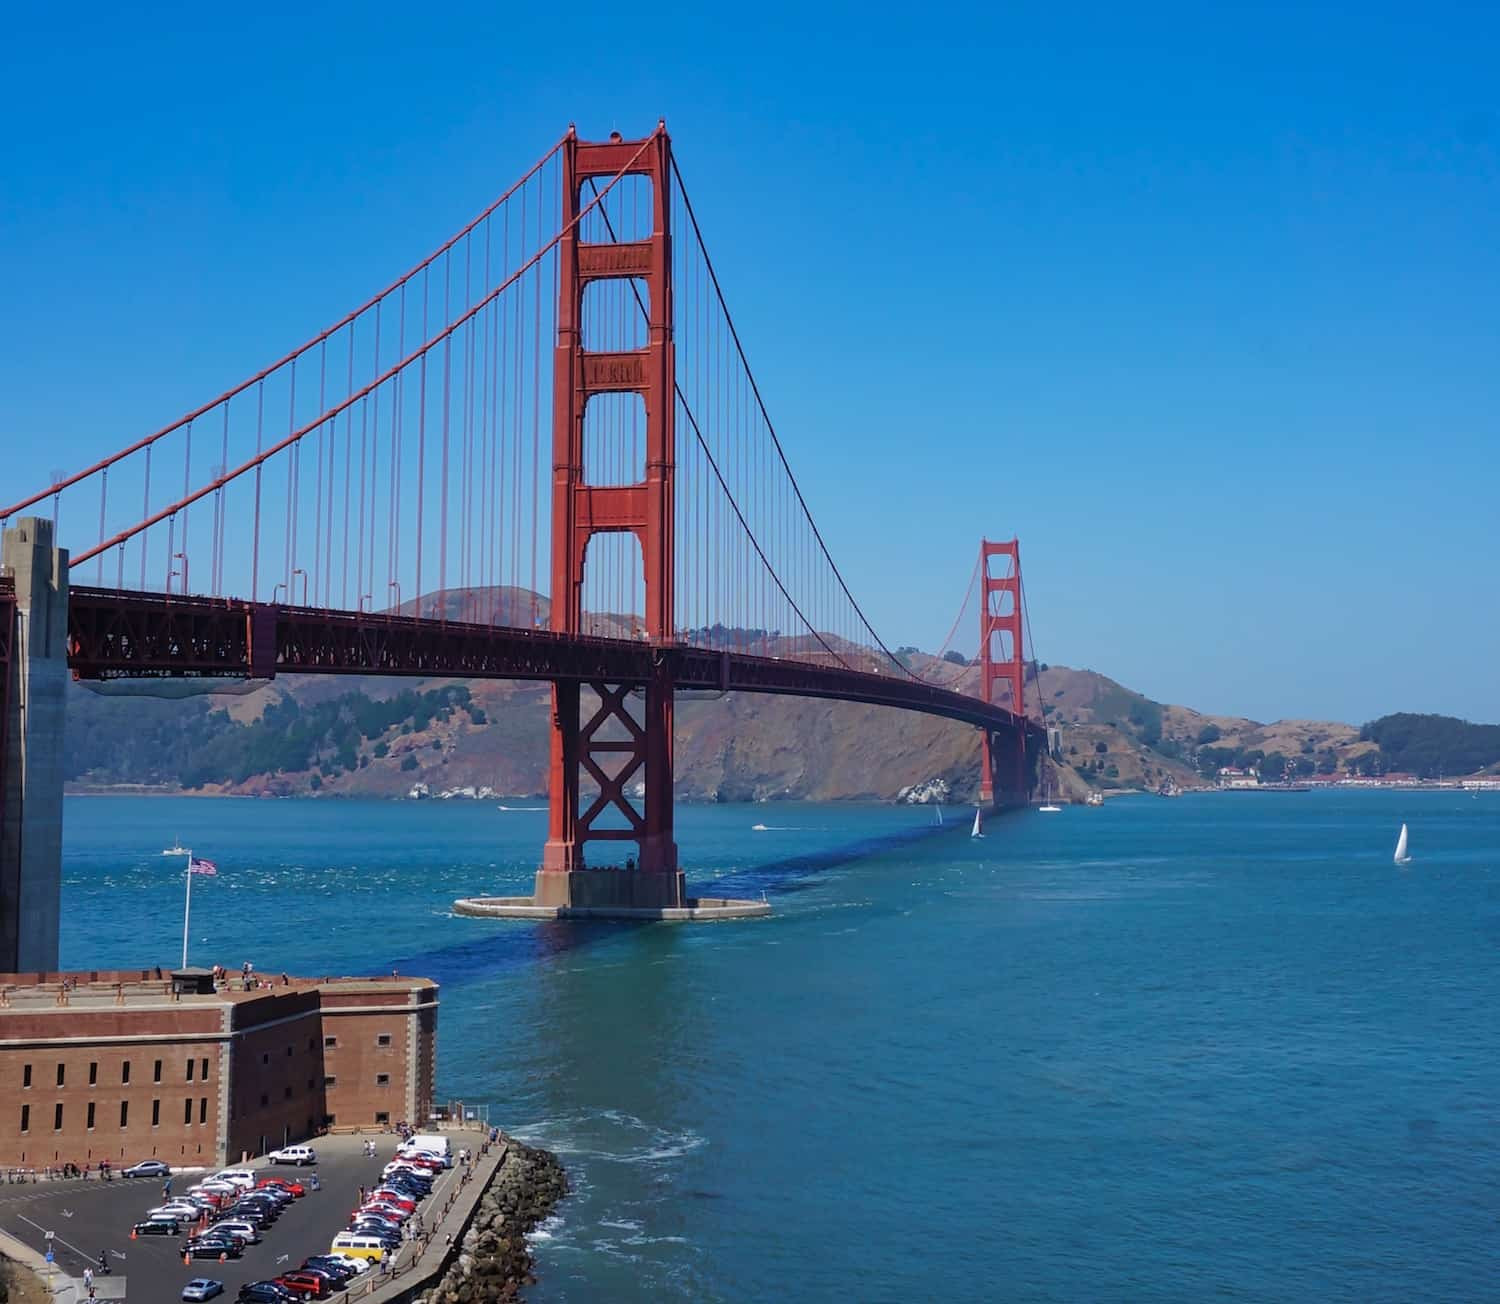 3 Days in San Francisco - Golden Gate Bridge